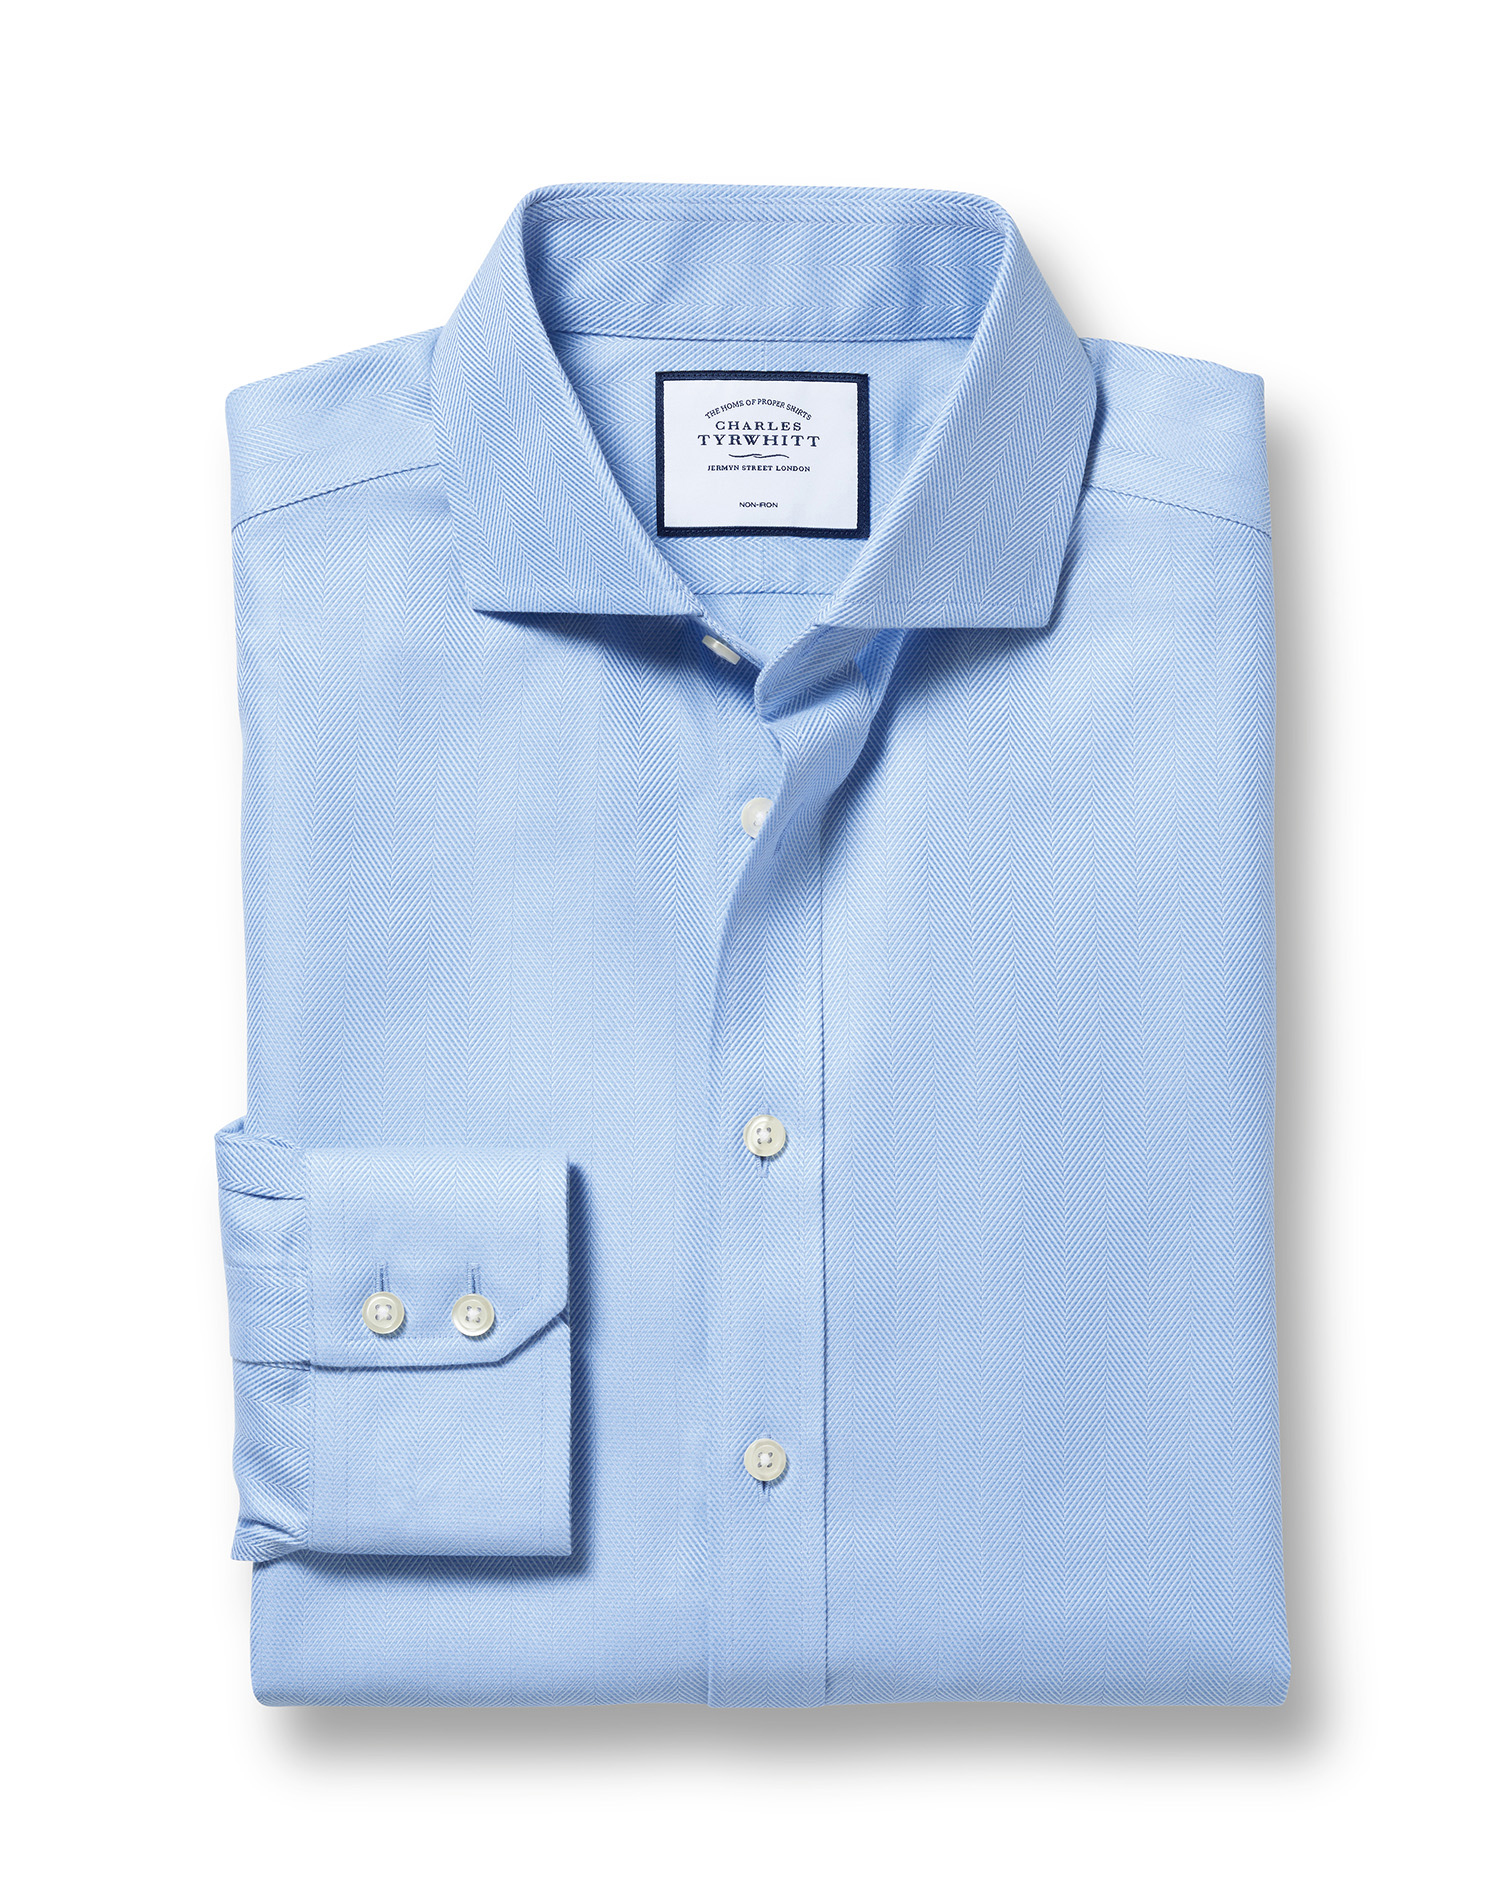 Slim Fit Non-Iron Sky Blue Herringbone Cotton Formal Shirt Single Cuff Size 15/35 by Charles Tyrwhit